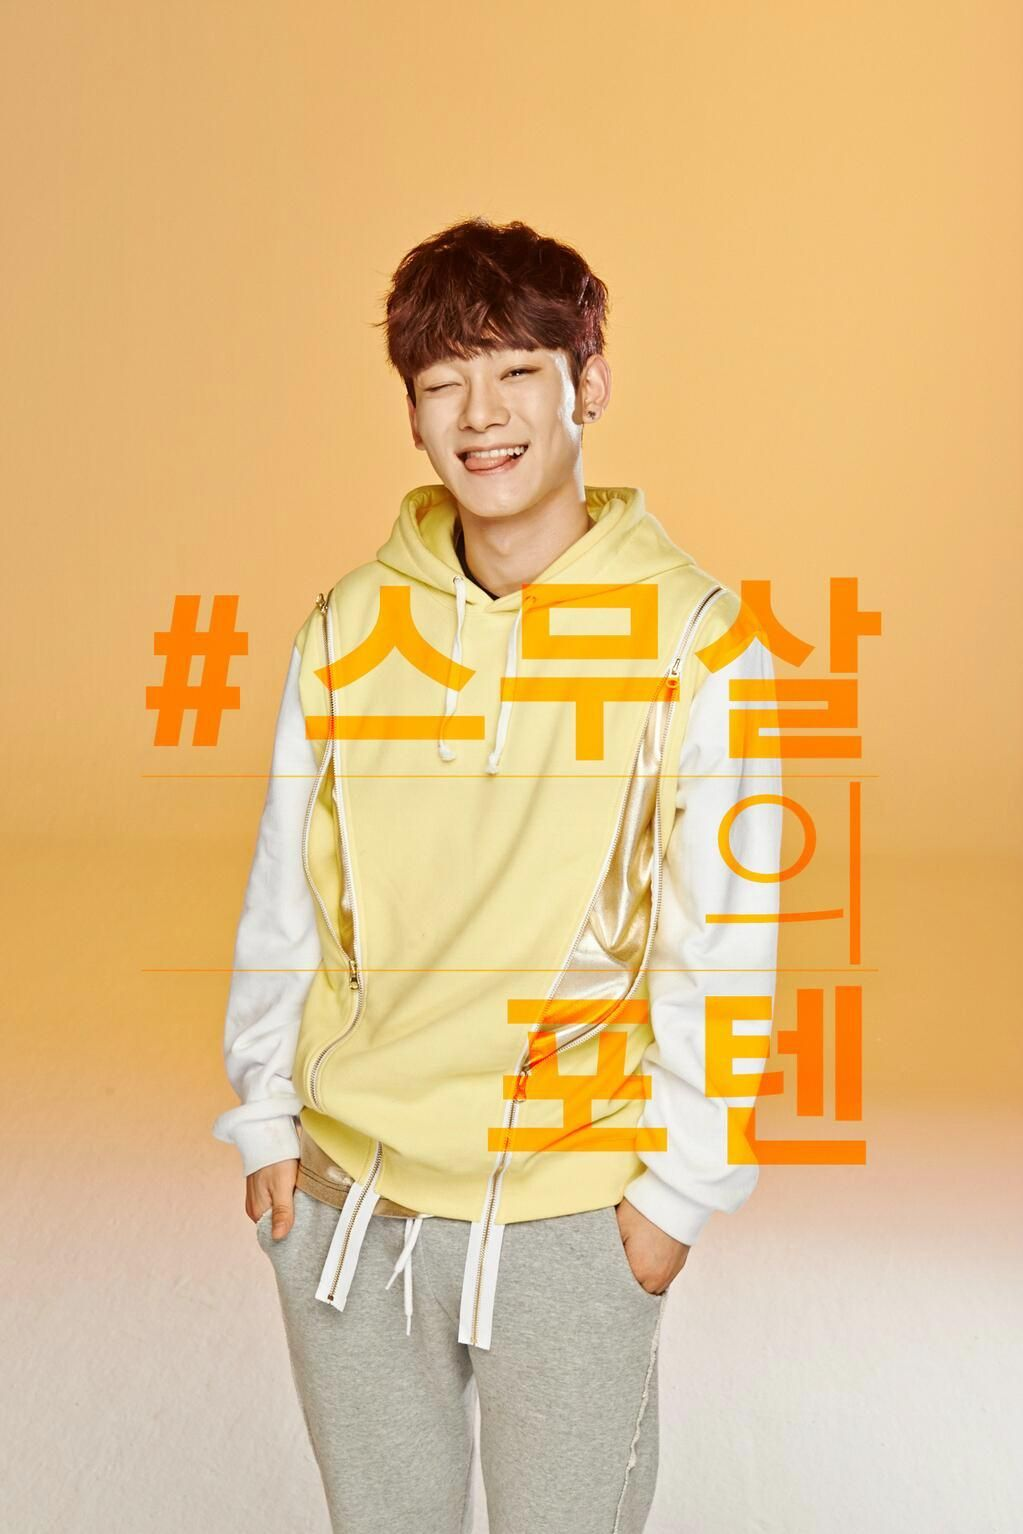 Chen's so silly and cute :)